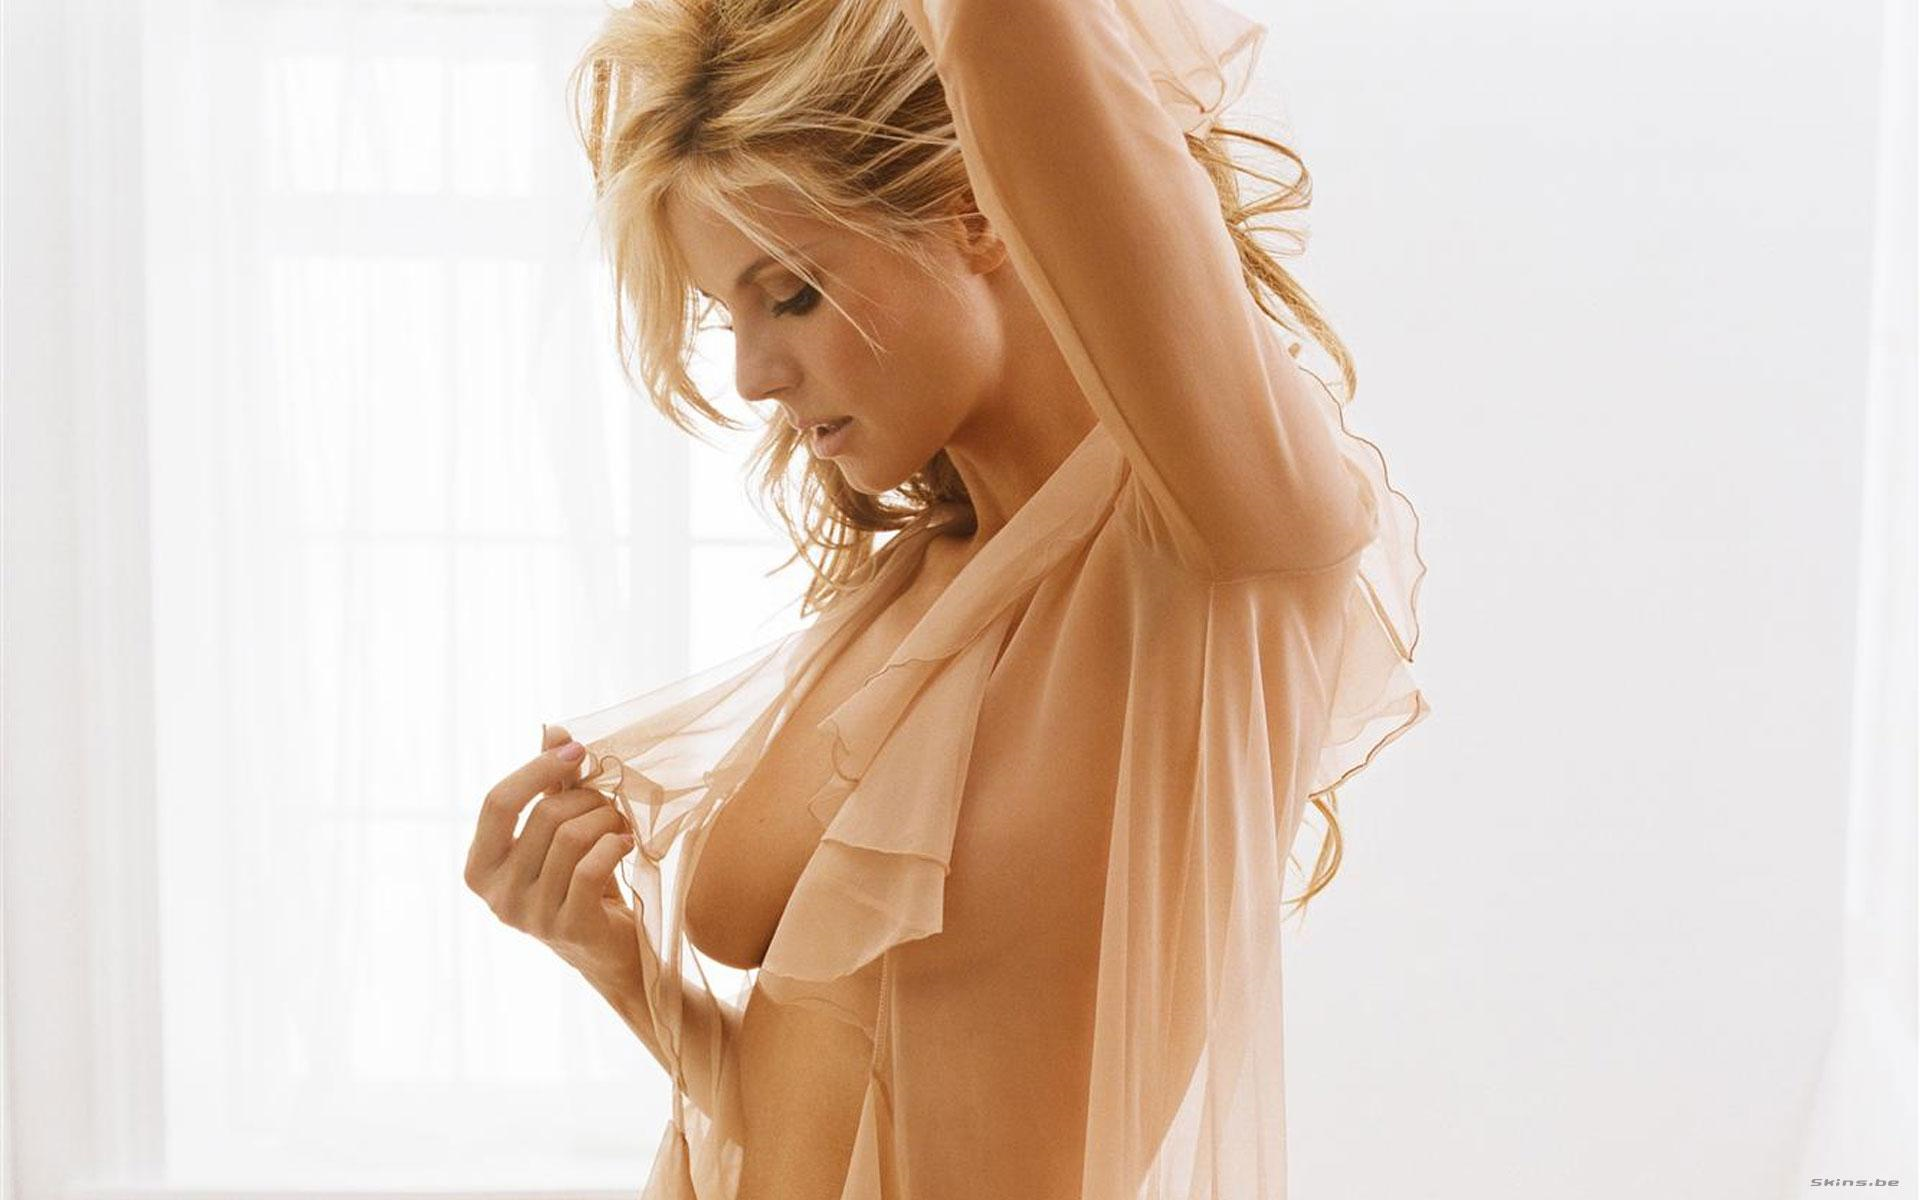 Heidi Klum topless... Just wearing some see through lace thing that is barely there